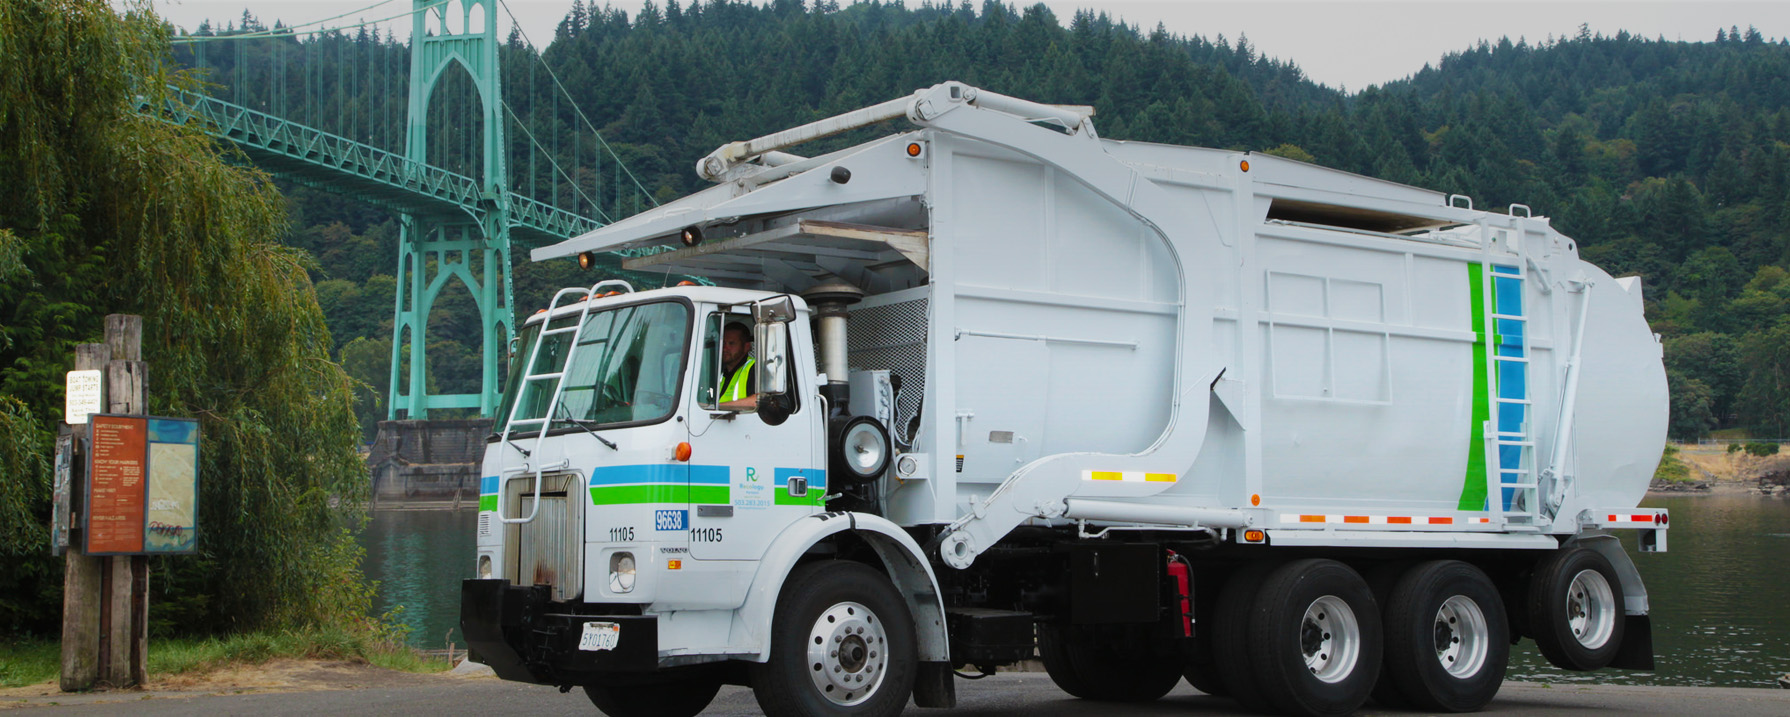 Recology Portland Commercial Recycling And Trash Services